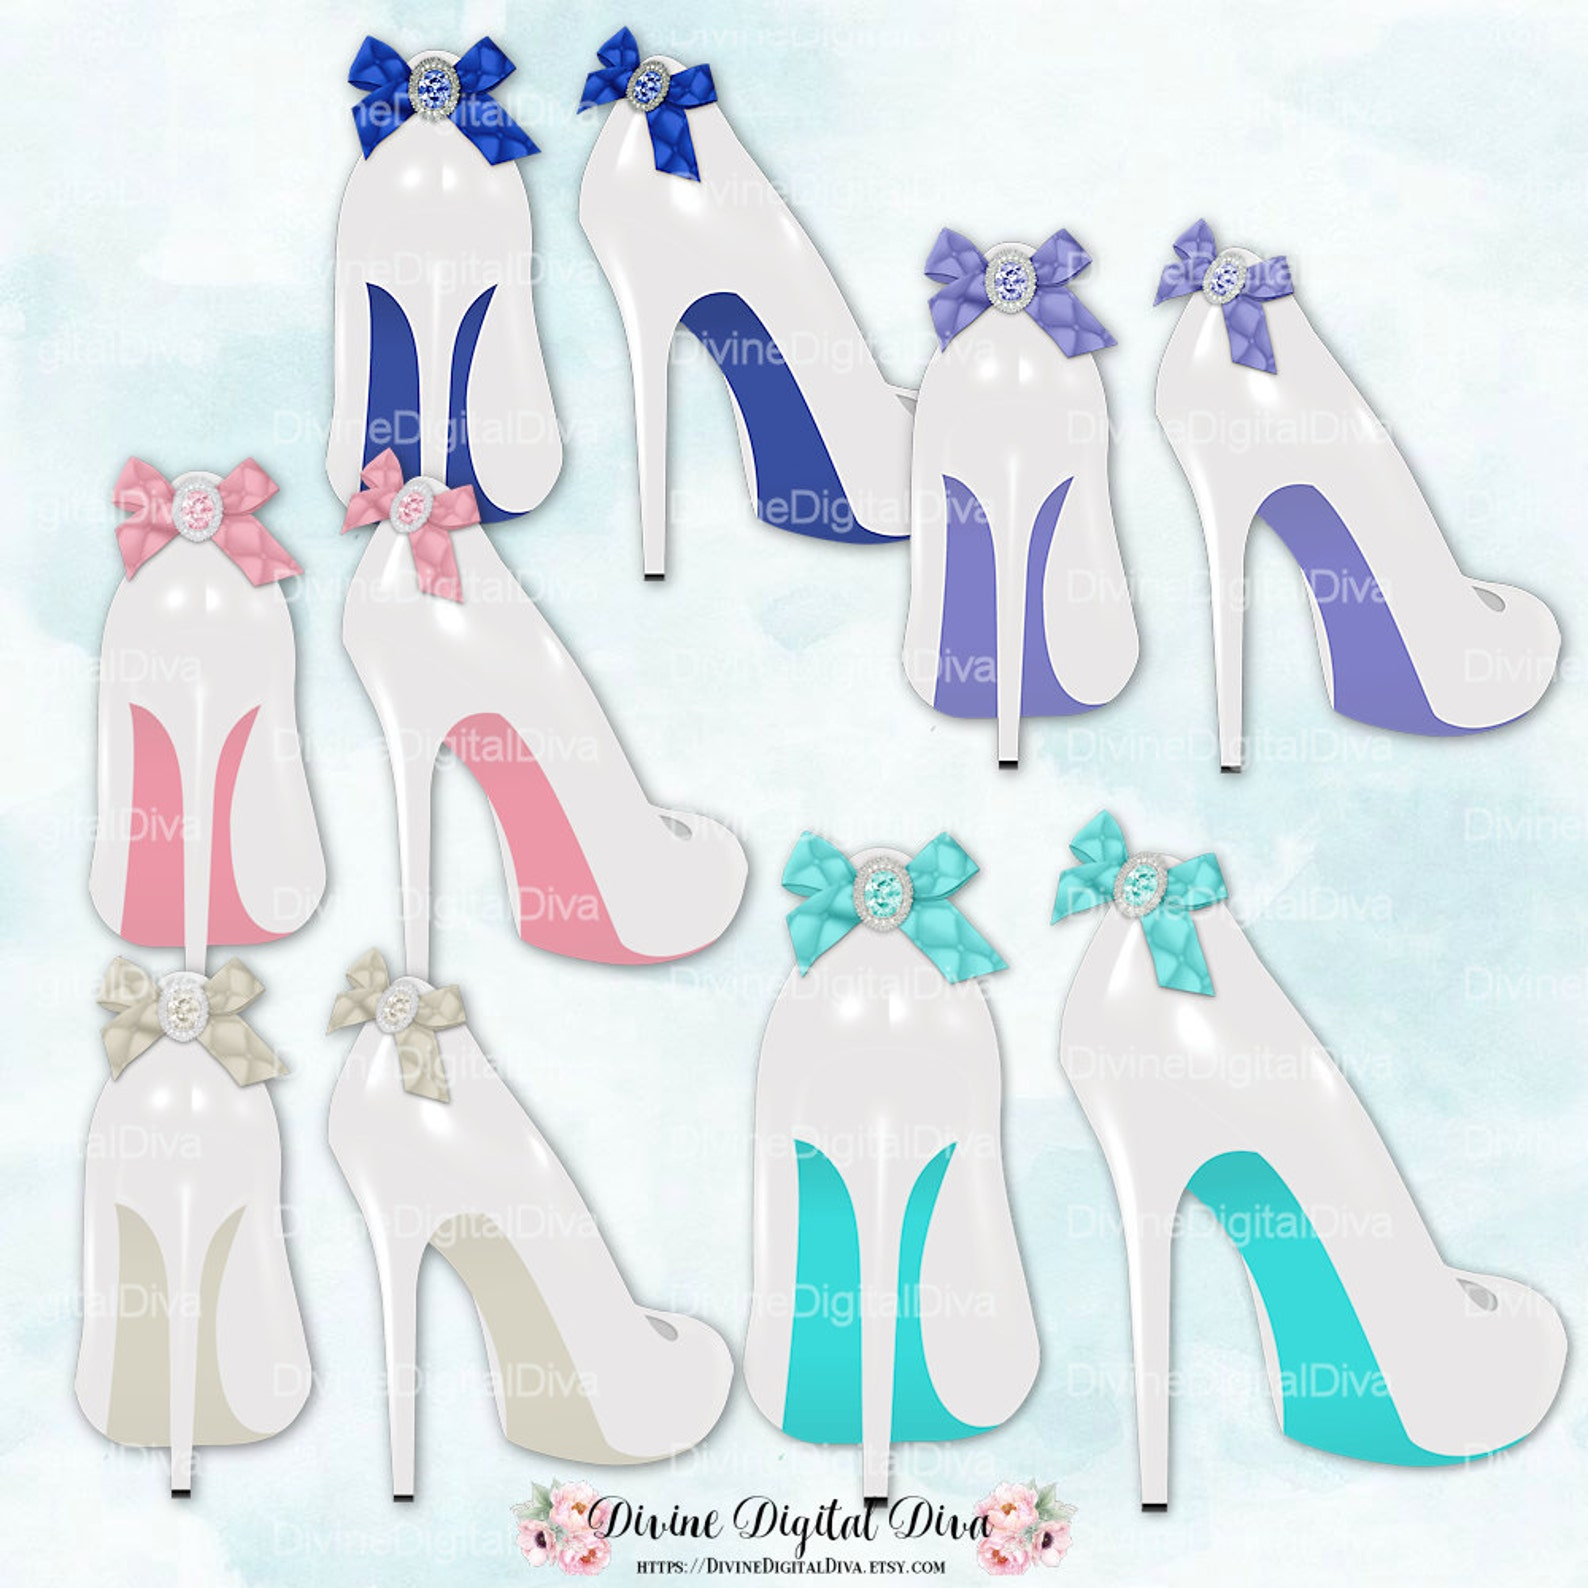 white bridal high heel shoes with color bottoms & matching bows | turquoise blue ballet pink mint peach lavender | clipart insta